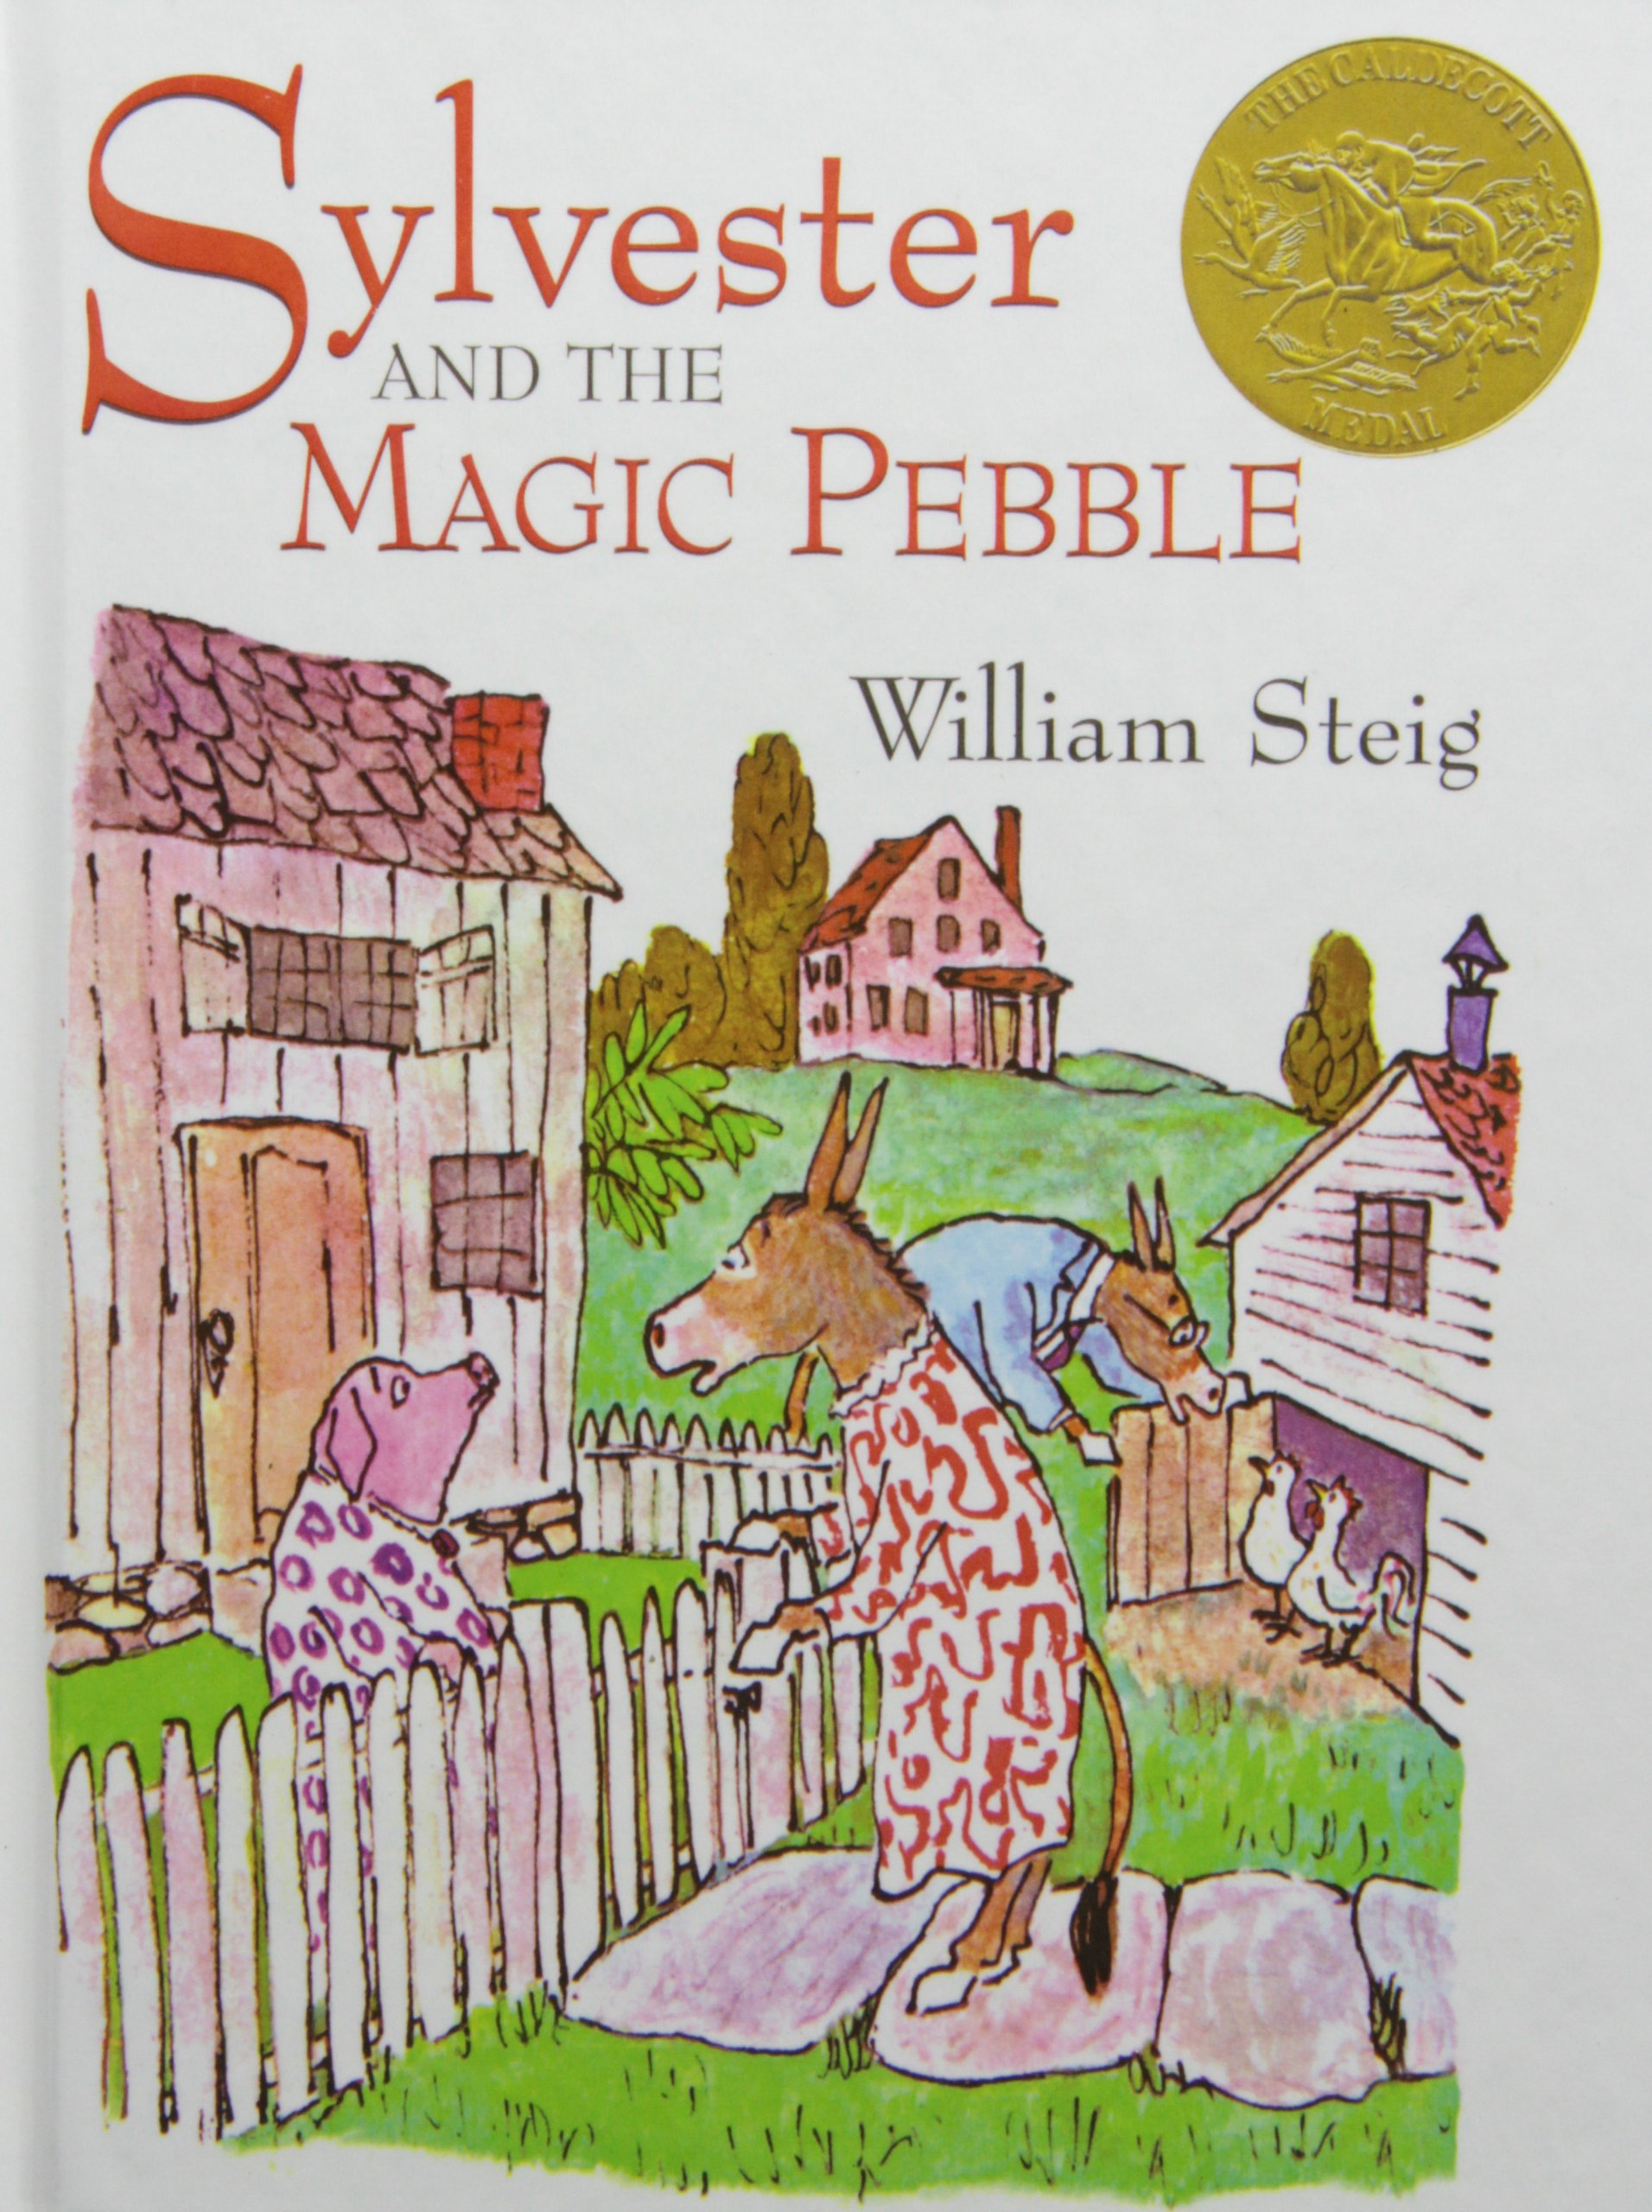 Worksheets Sylvester And The Magic Pebble Worksheets